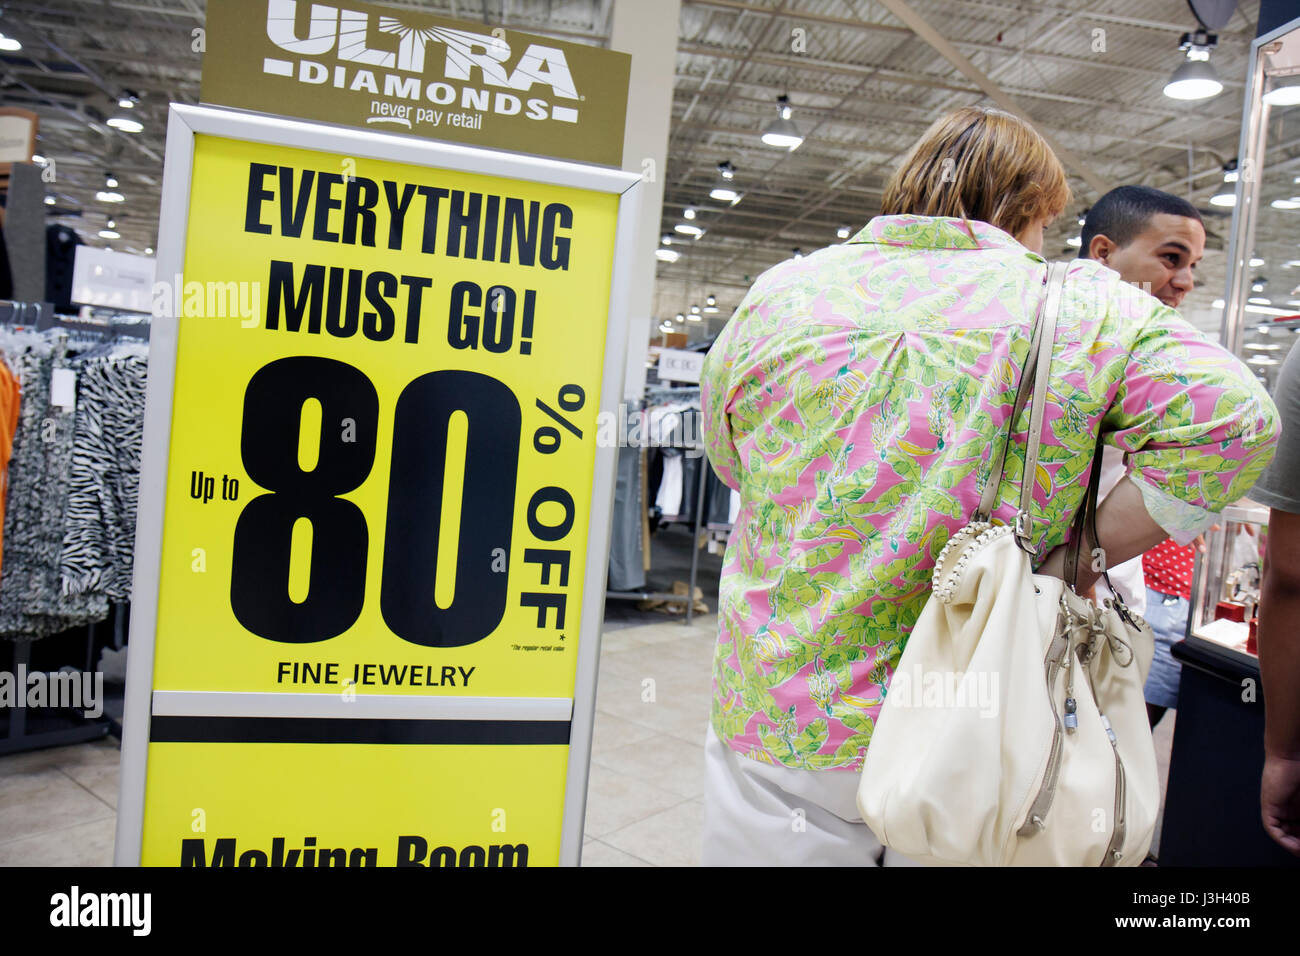 Miami Florida Dolphin Mall Burlington Coat Factory fine jewelry discount sale  woman shopper shopping 80% off everything must go a37d6048e3137